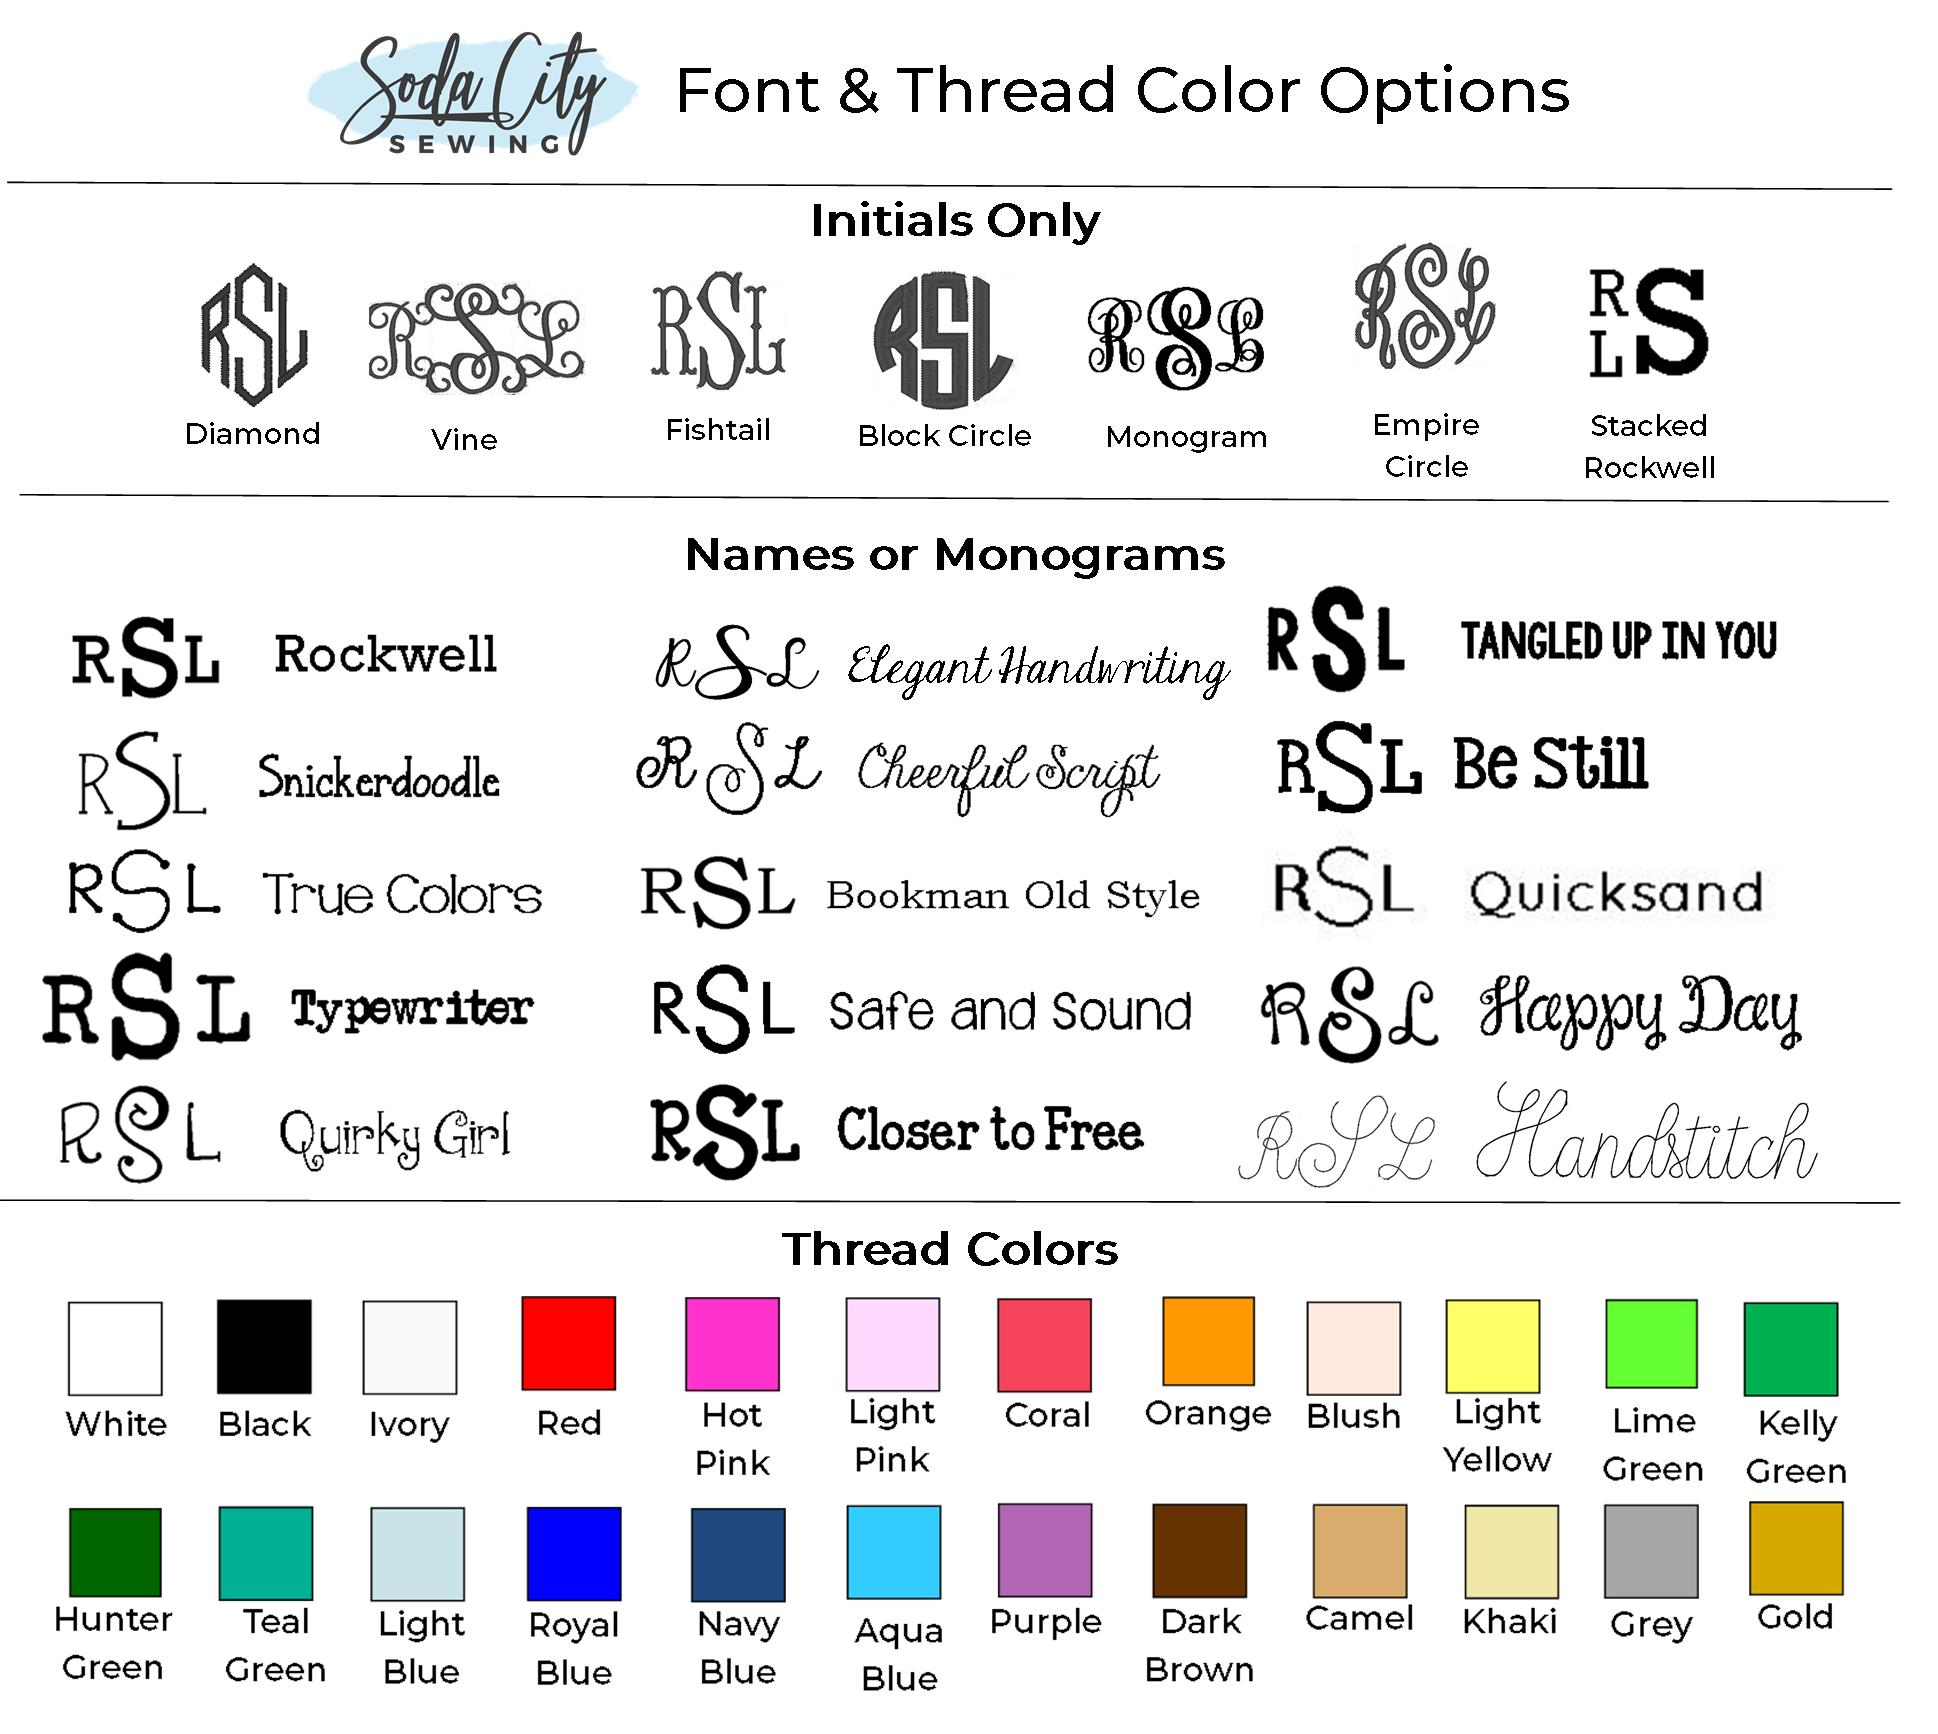 font guide and thread colors